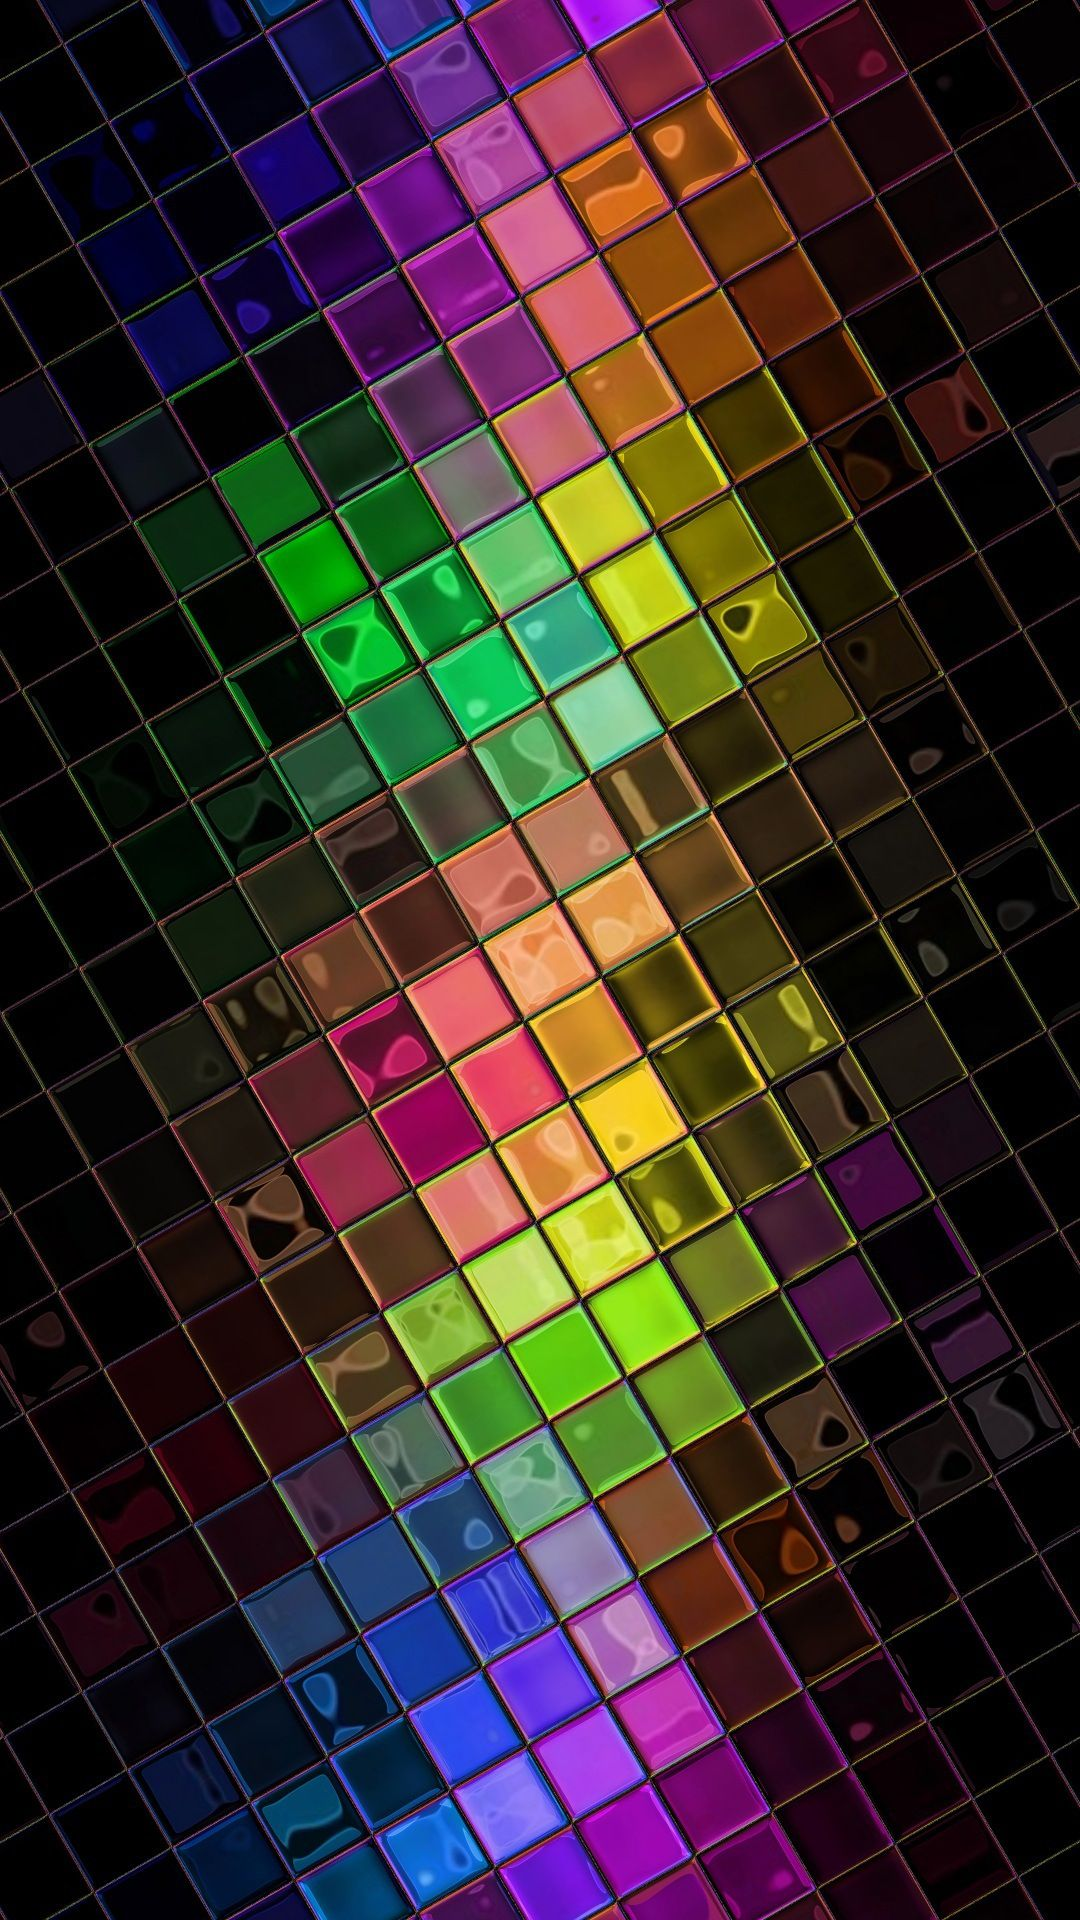 Hd wallpaper for iphone 6 - Find This Pin And More On Cell Phone Wallpaper Colorful Squares In Hd Wallpapers Iphone